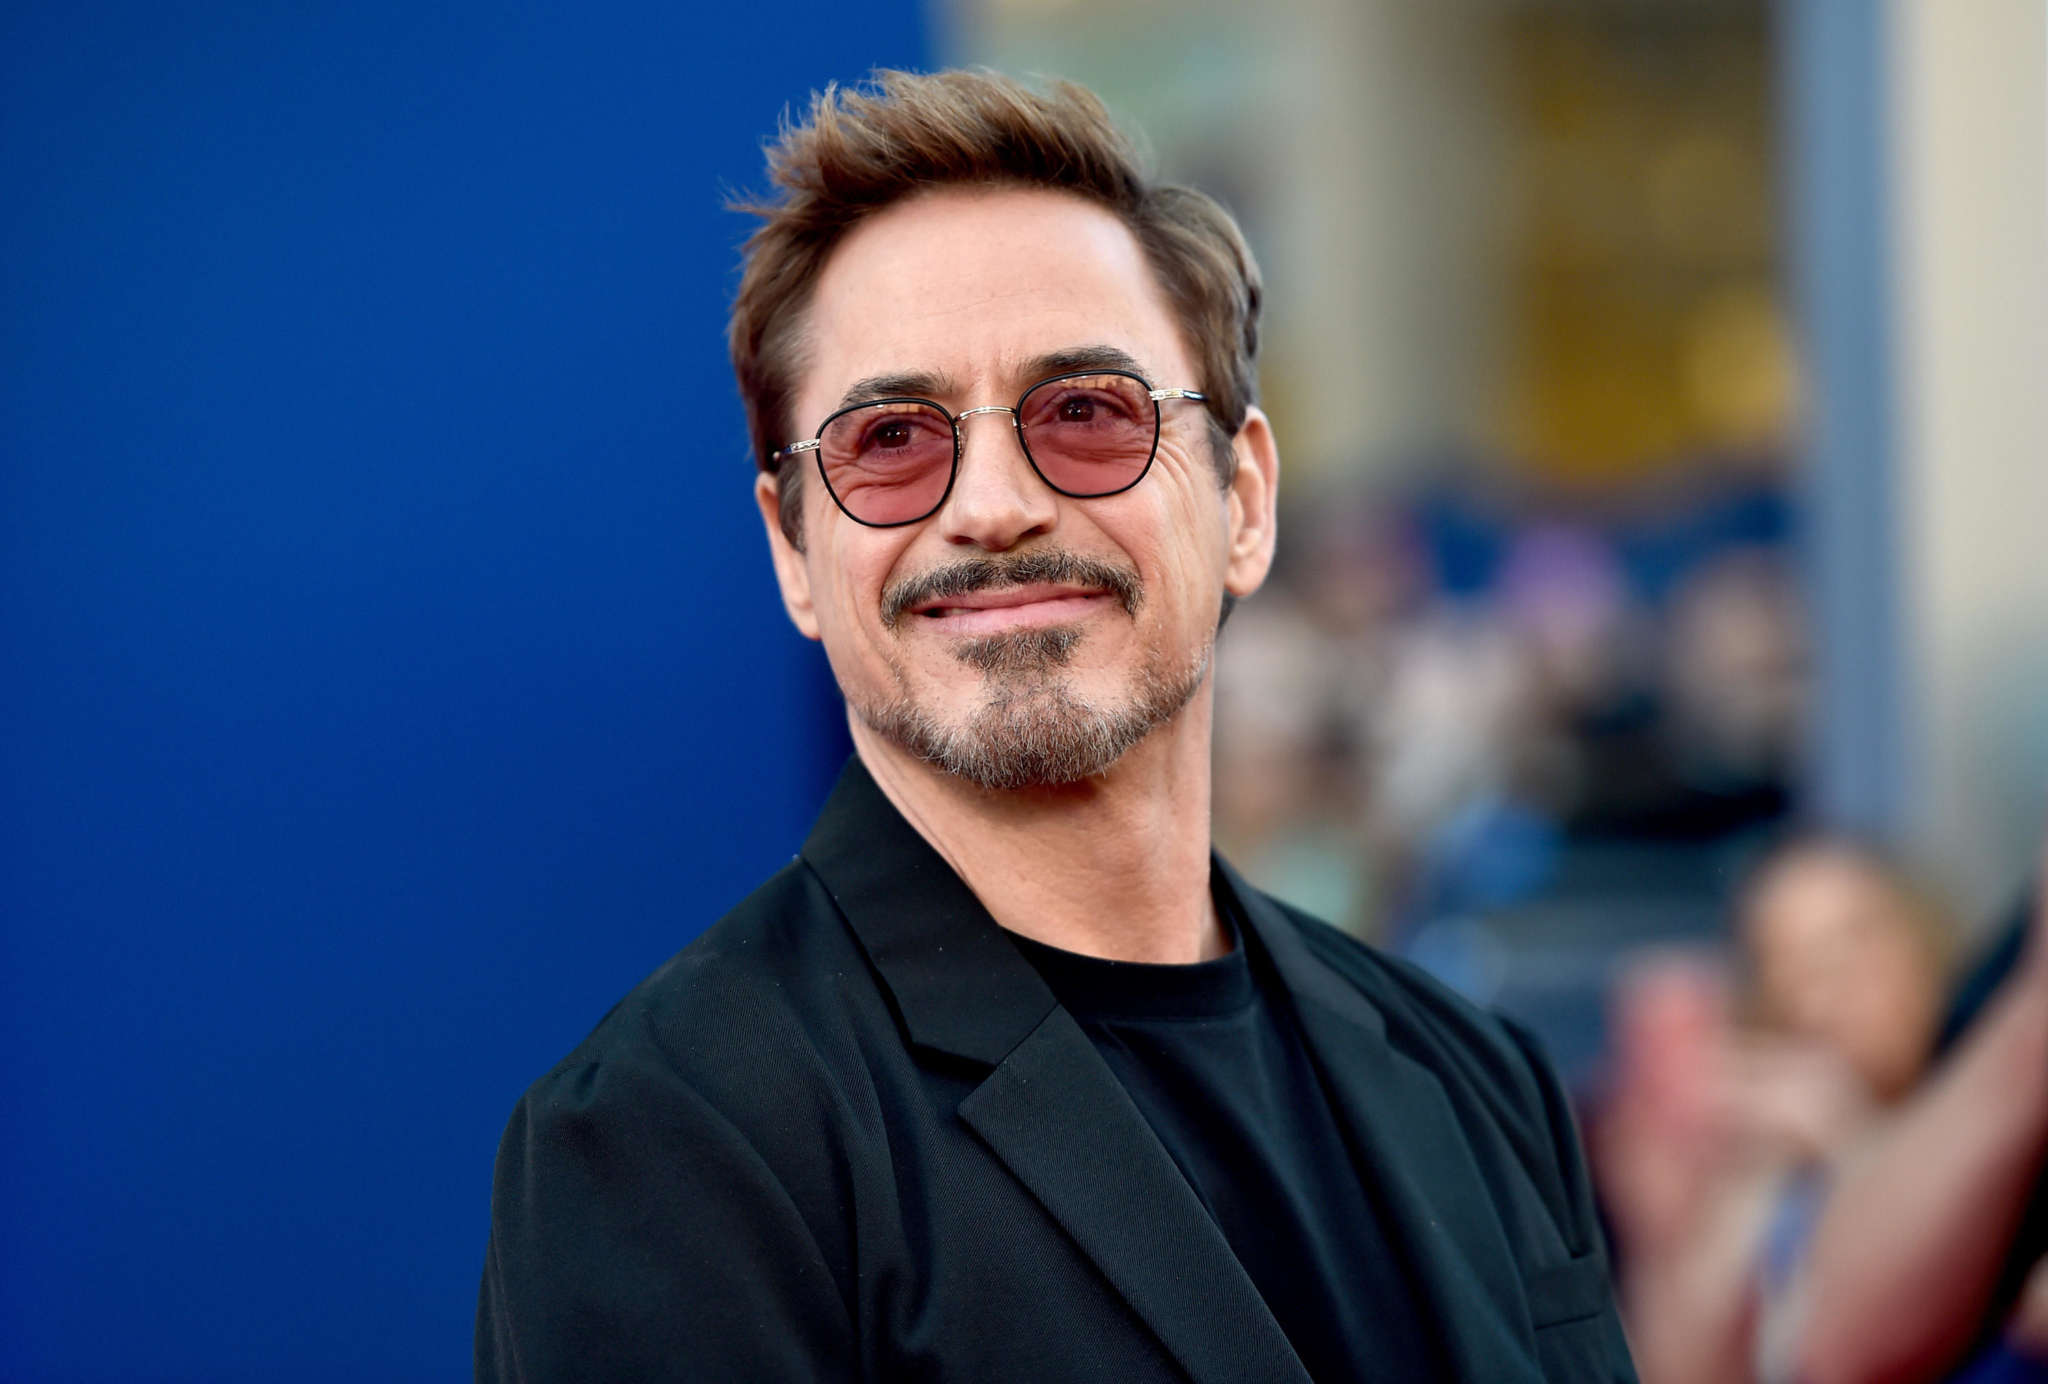 """robert-downey-jr-says-hed-be-open-to-bringing-back-iron-man-but-on-one-condition-do-it-right"""